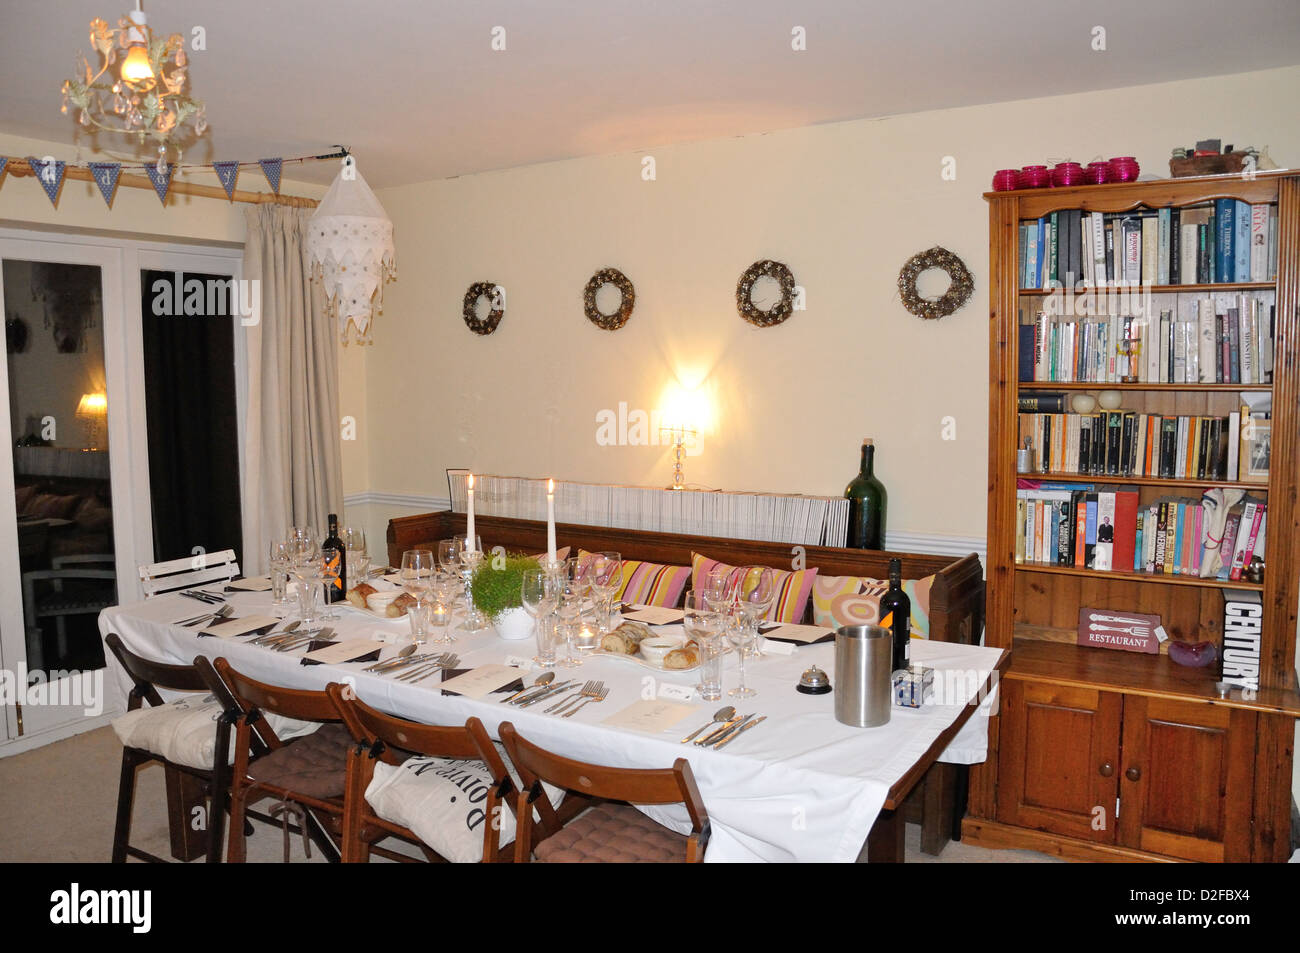 Dining room at Secret Supper Society dinner, Somerton, Oxfordshire, England, United Kingdom - Stock Image